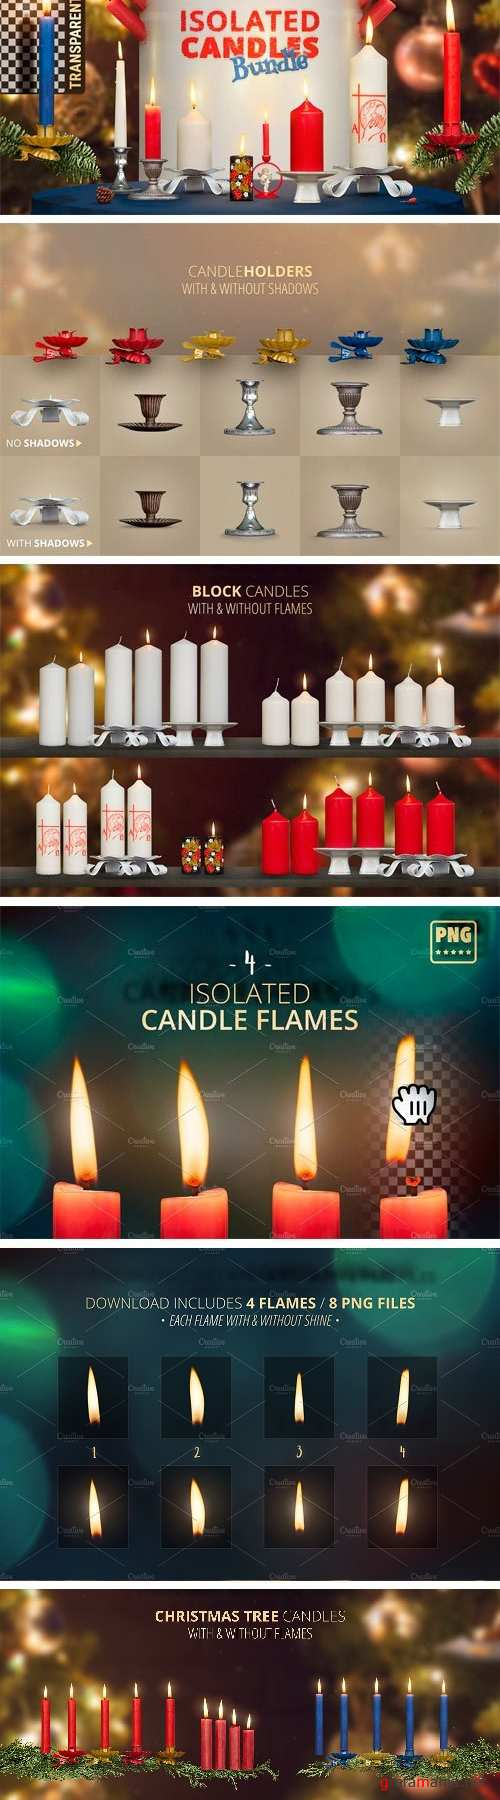 Isolated Candles Bundle with Flames 1989053